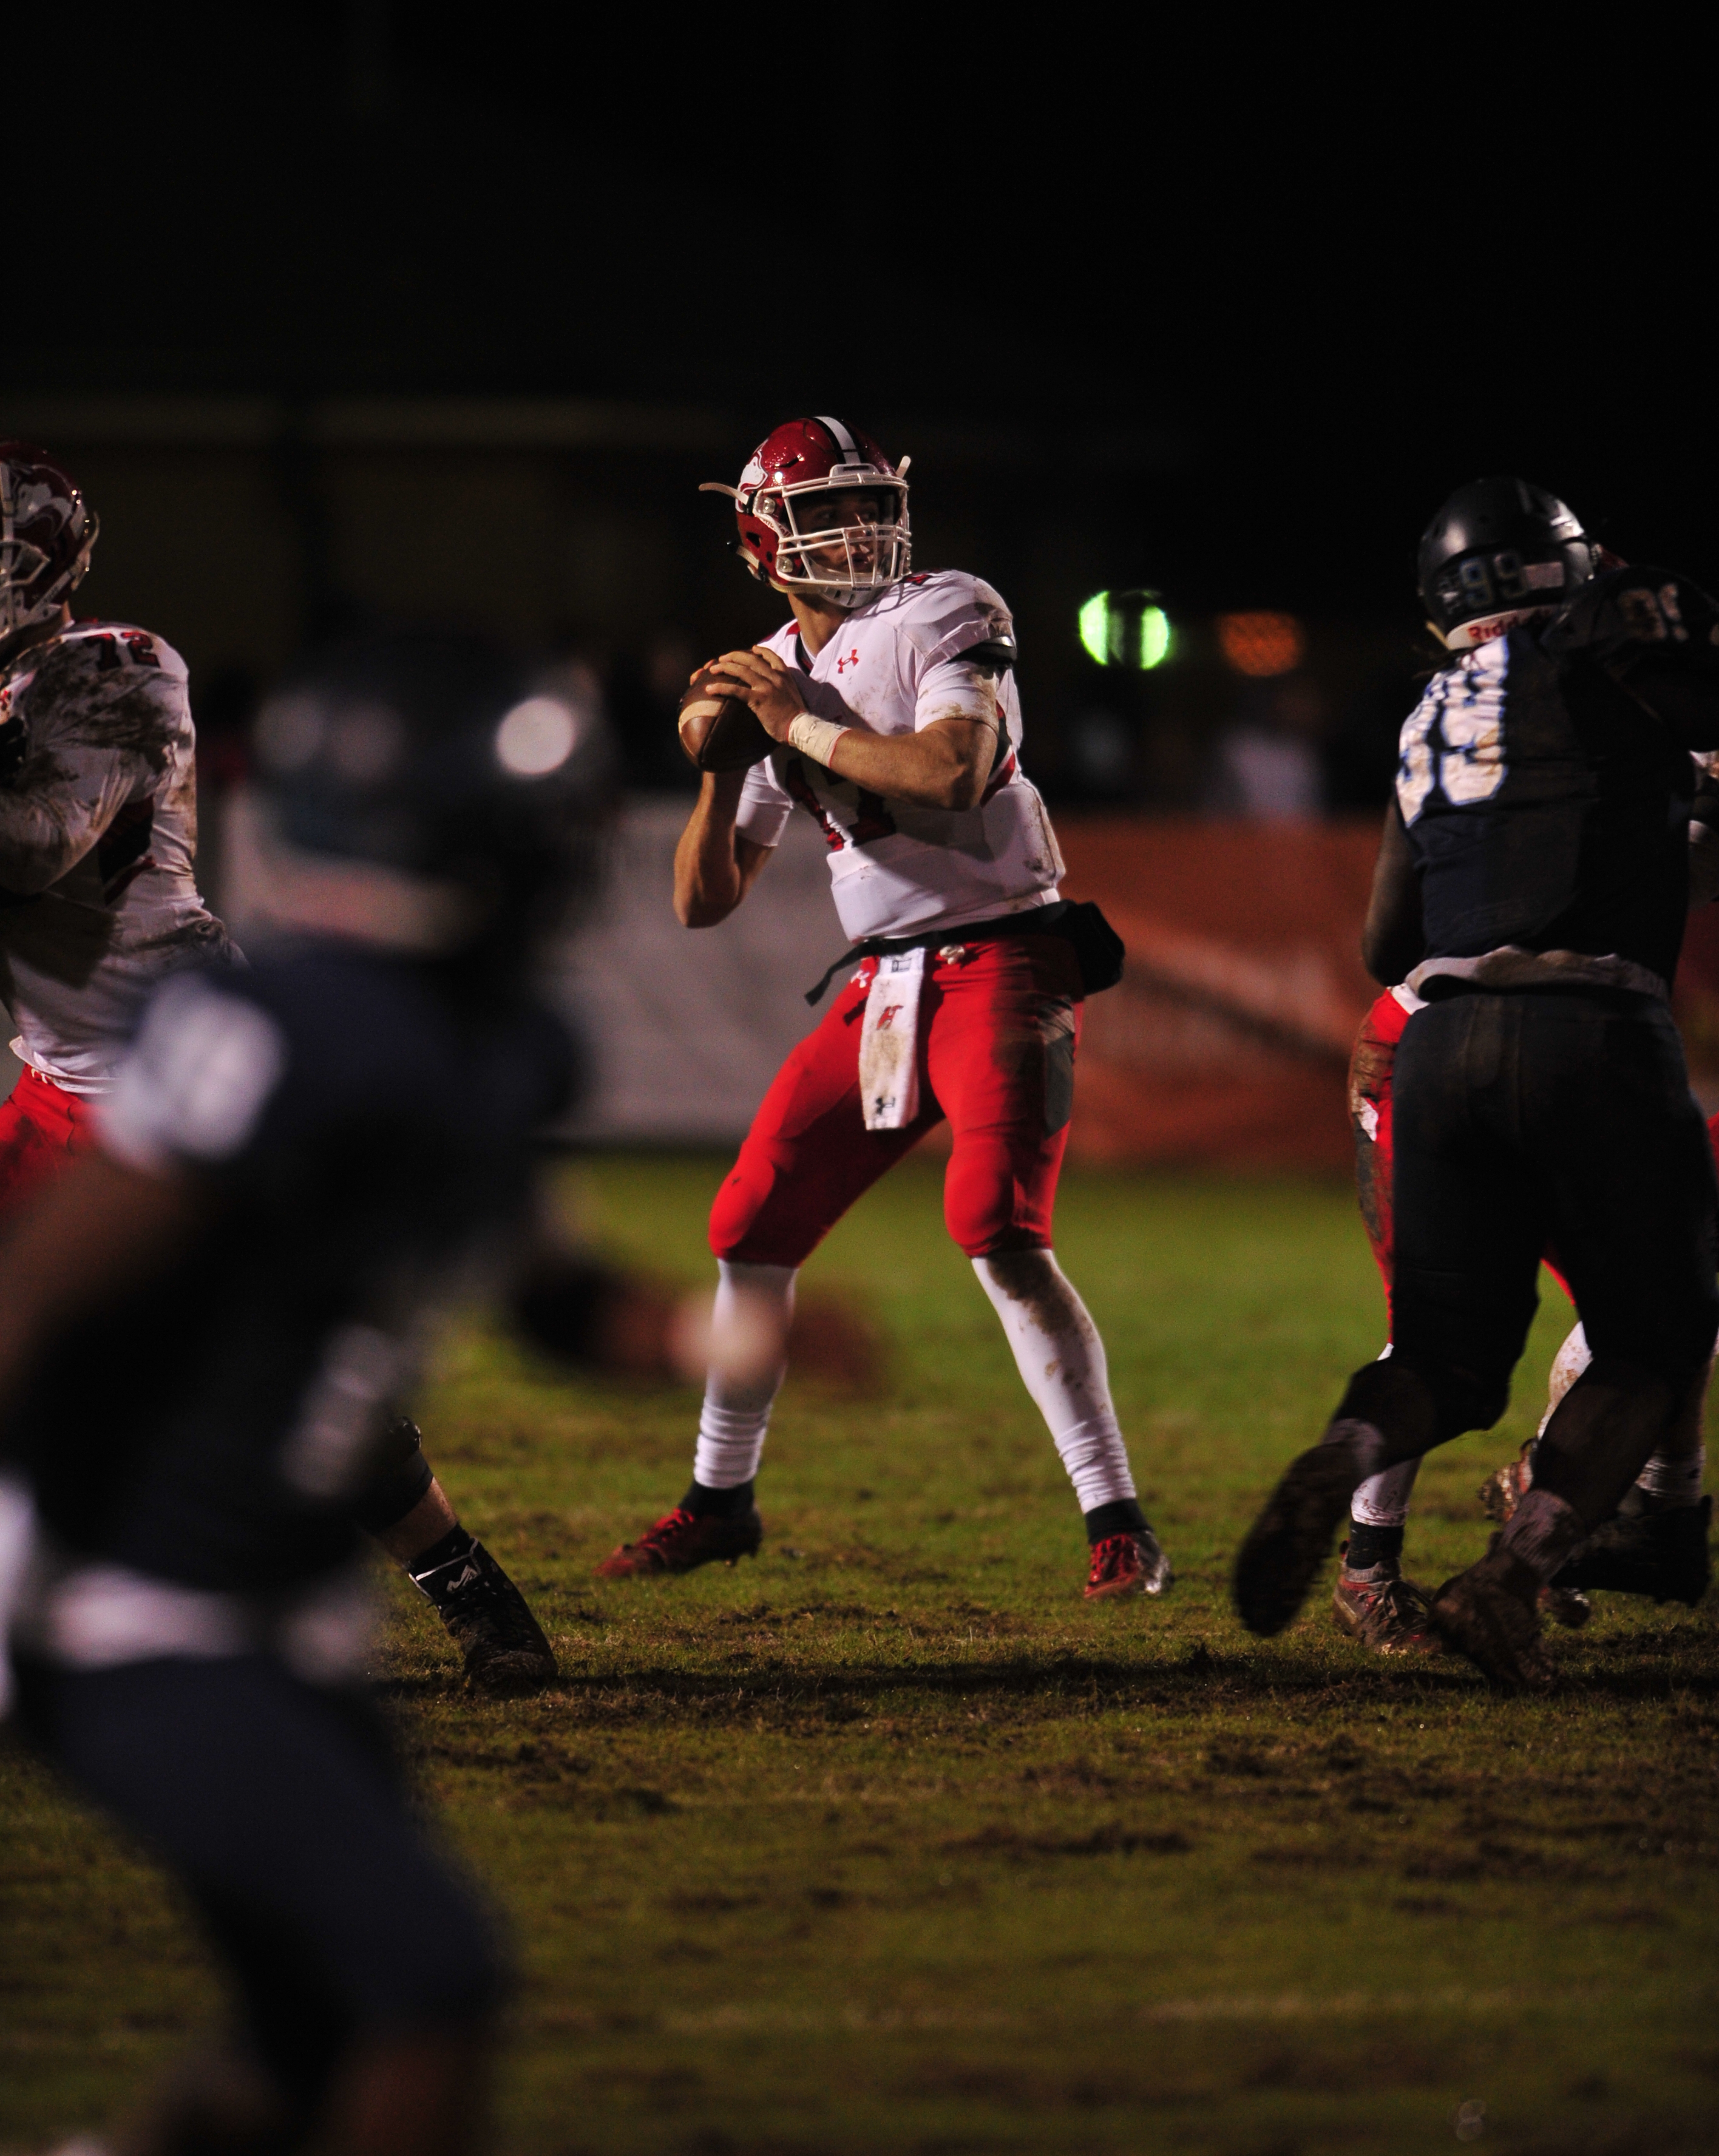 Eight No. 4 Seeds Advance to Round 2 as AHSAA Football Playoffs head to Round 2